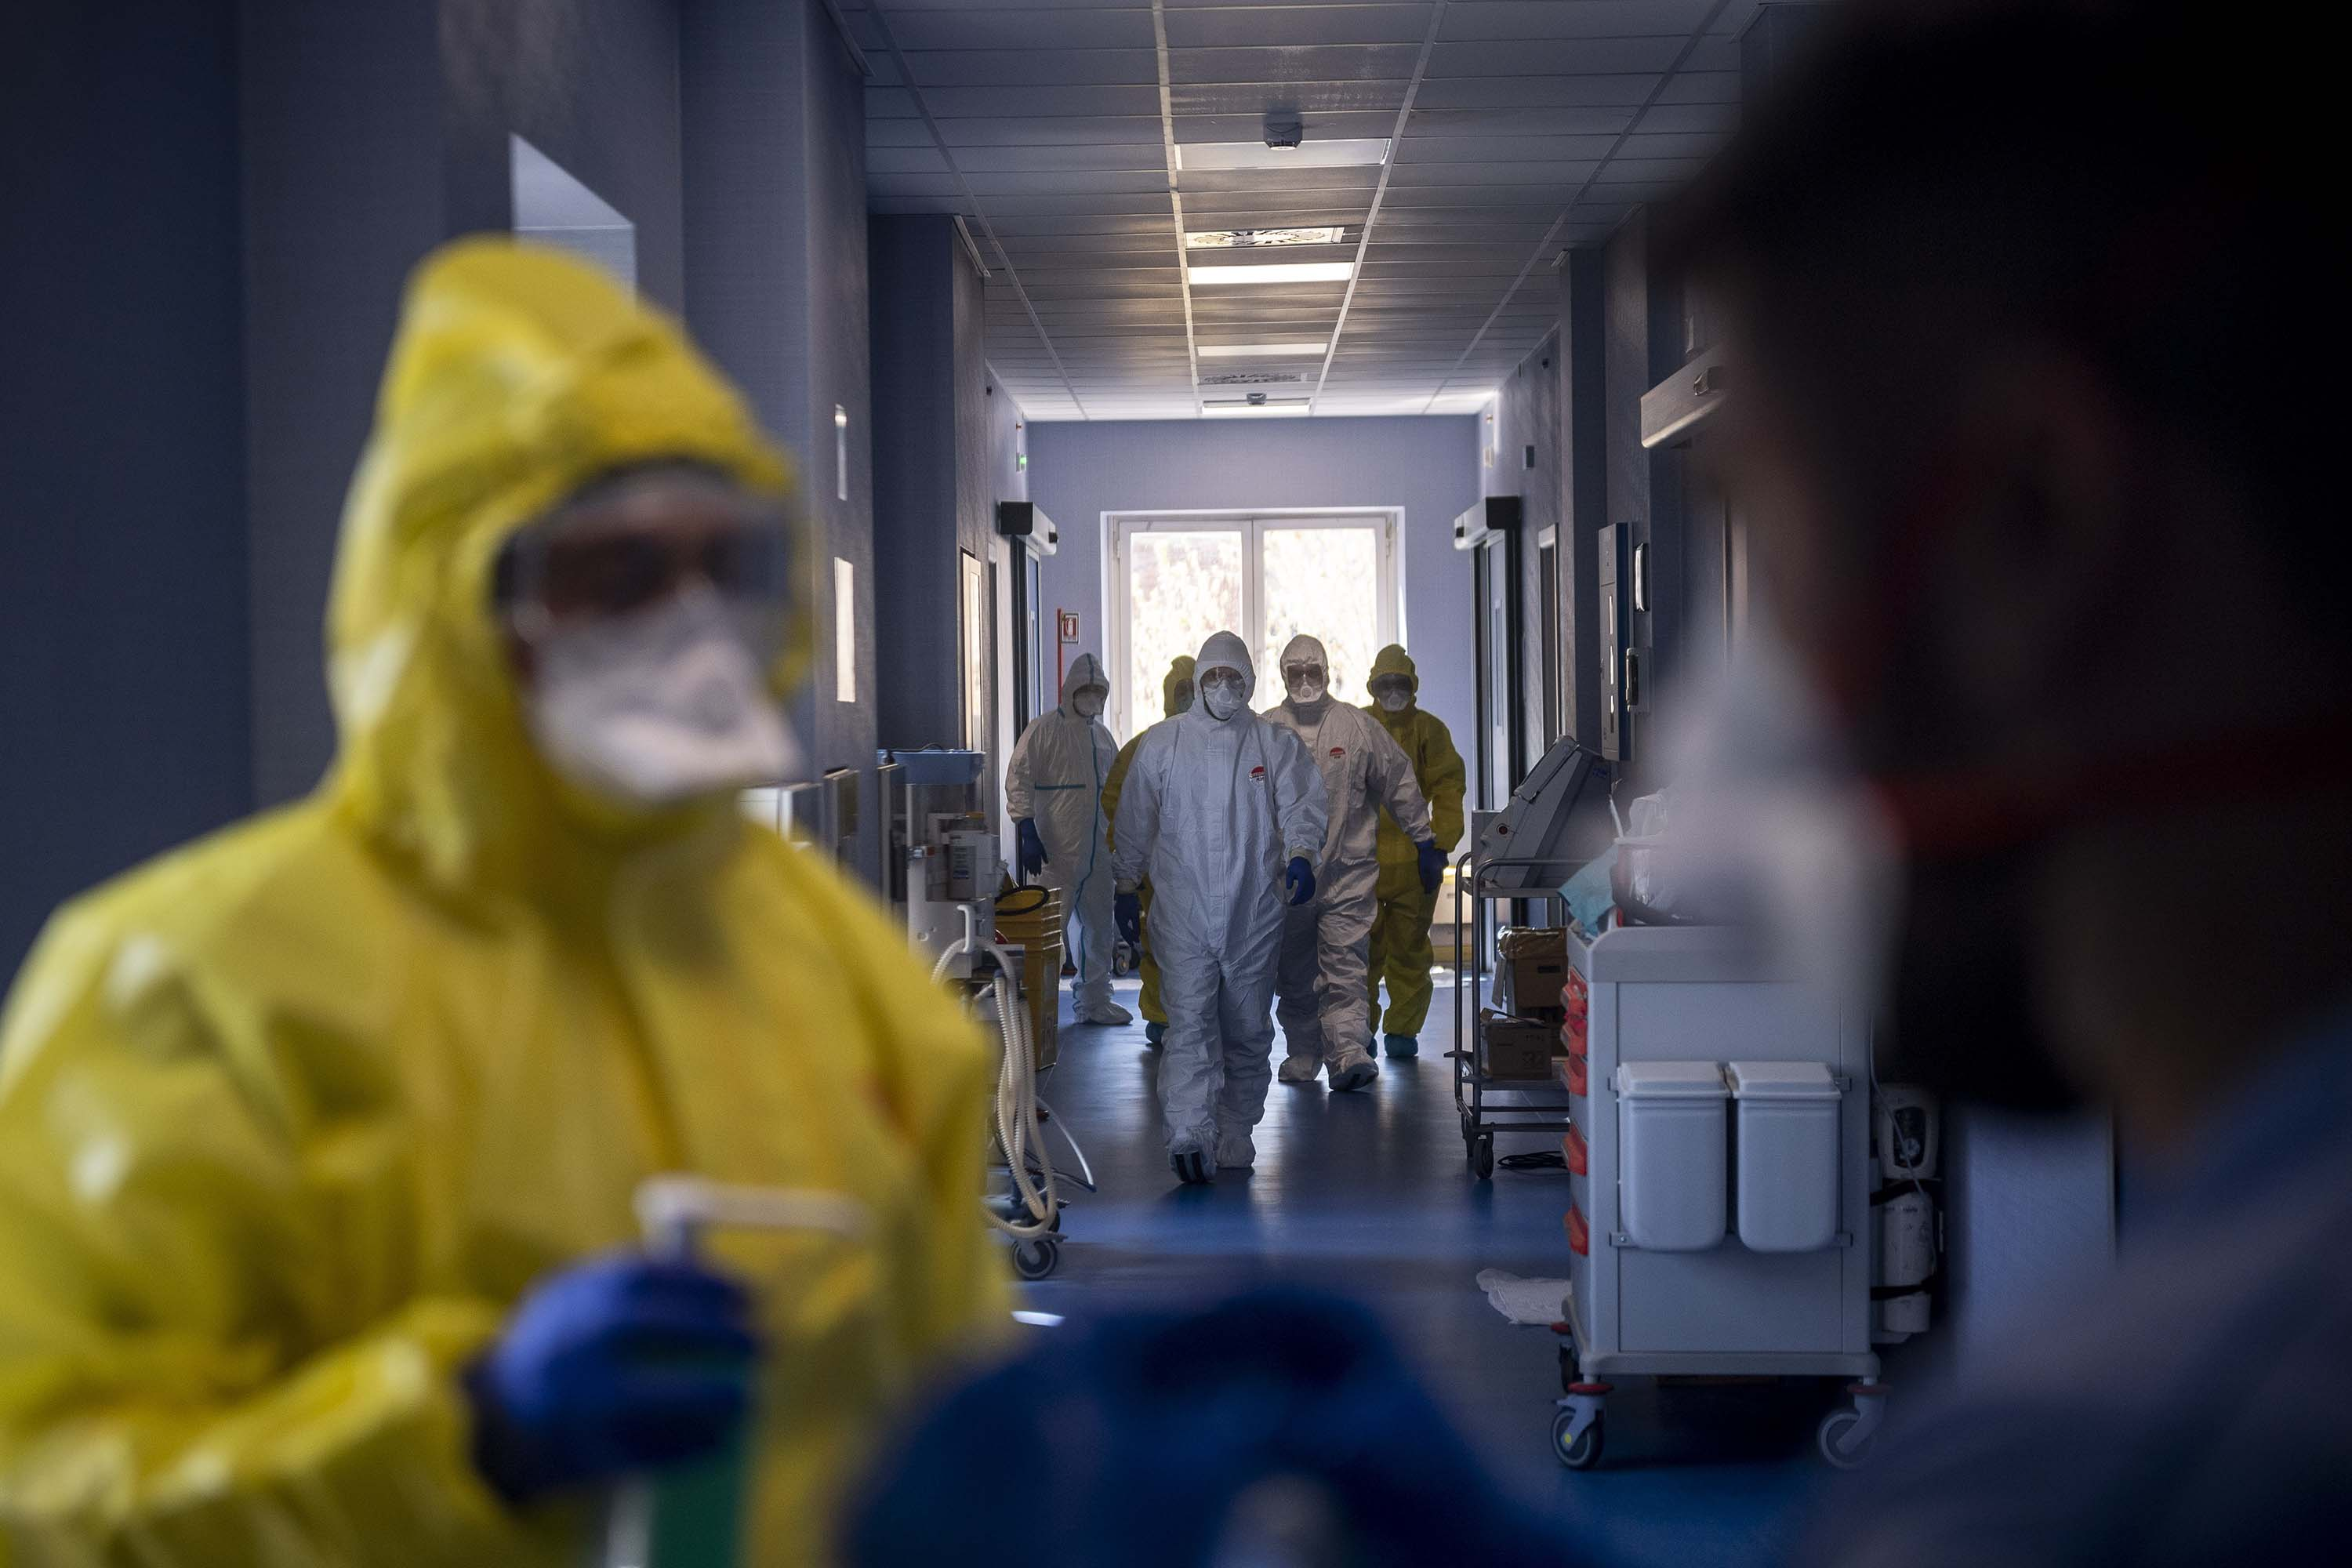 Doctors work in the intensive care unit at Celio Military Polyclinic Hospital in Rome, Italy, on April 1.